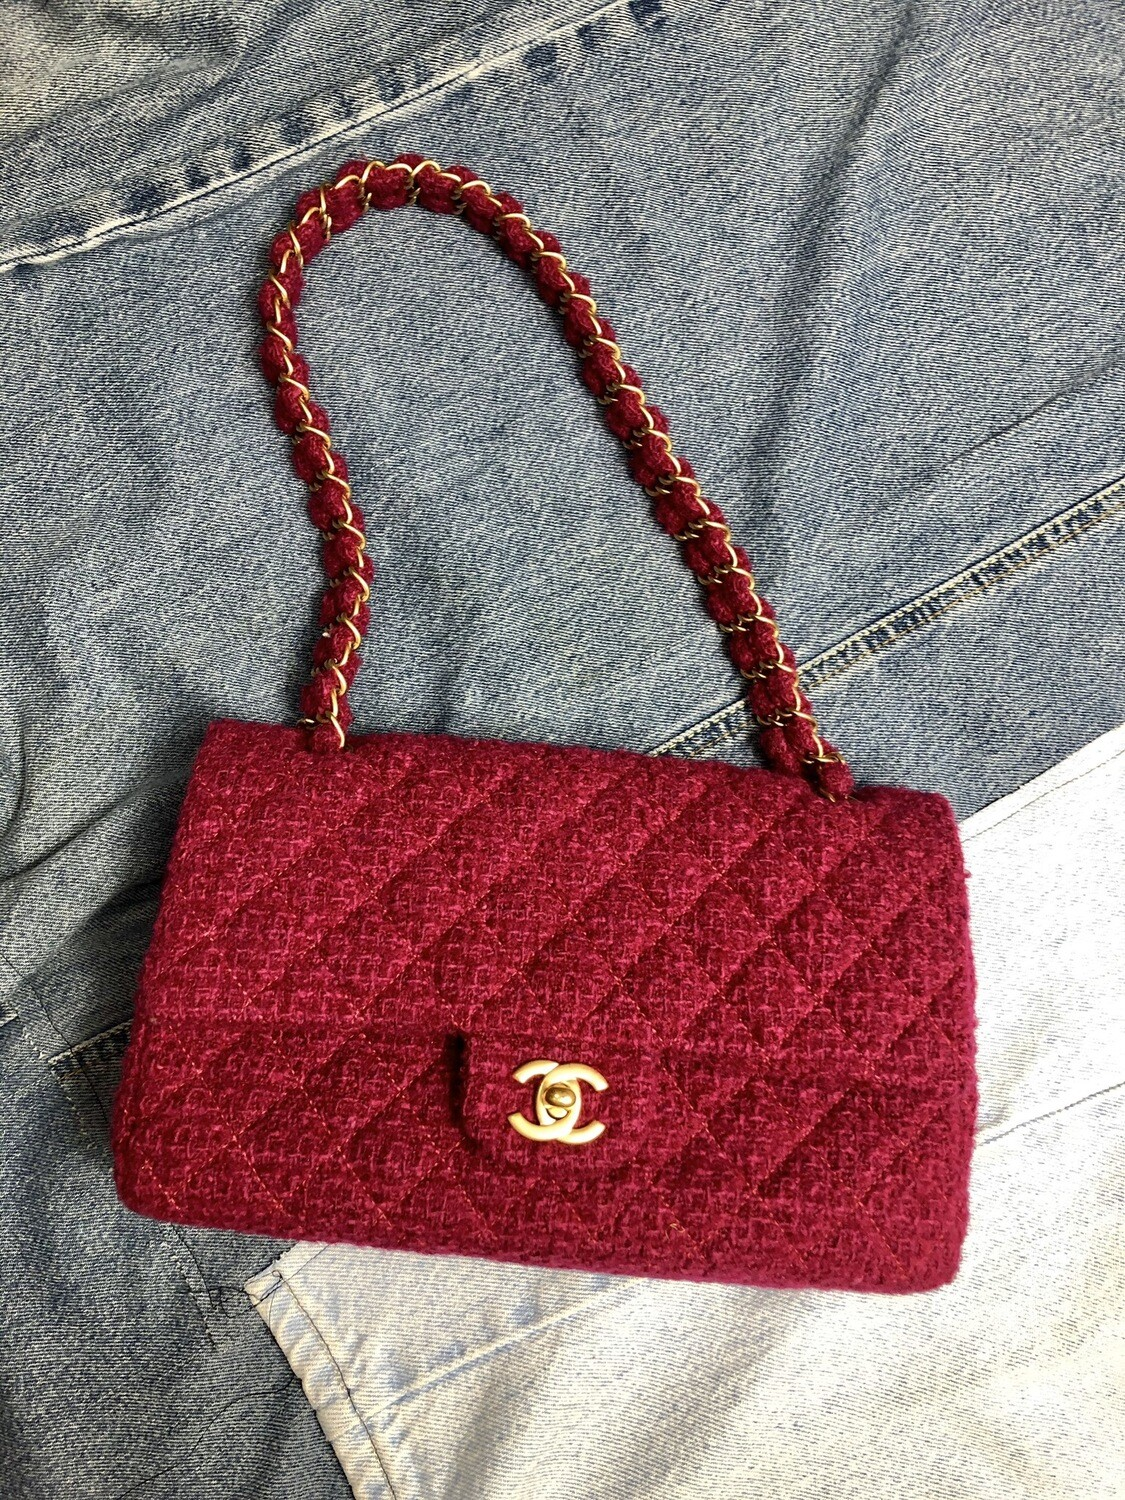 Chanel Fuchsia Tweed Shoulder Bag